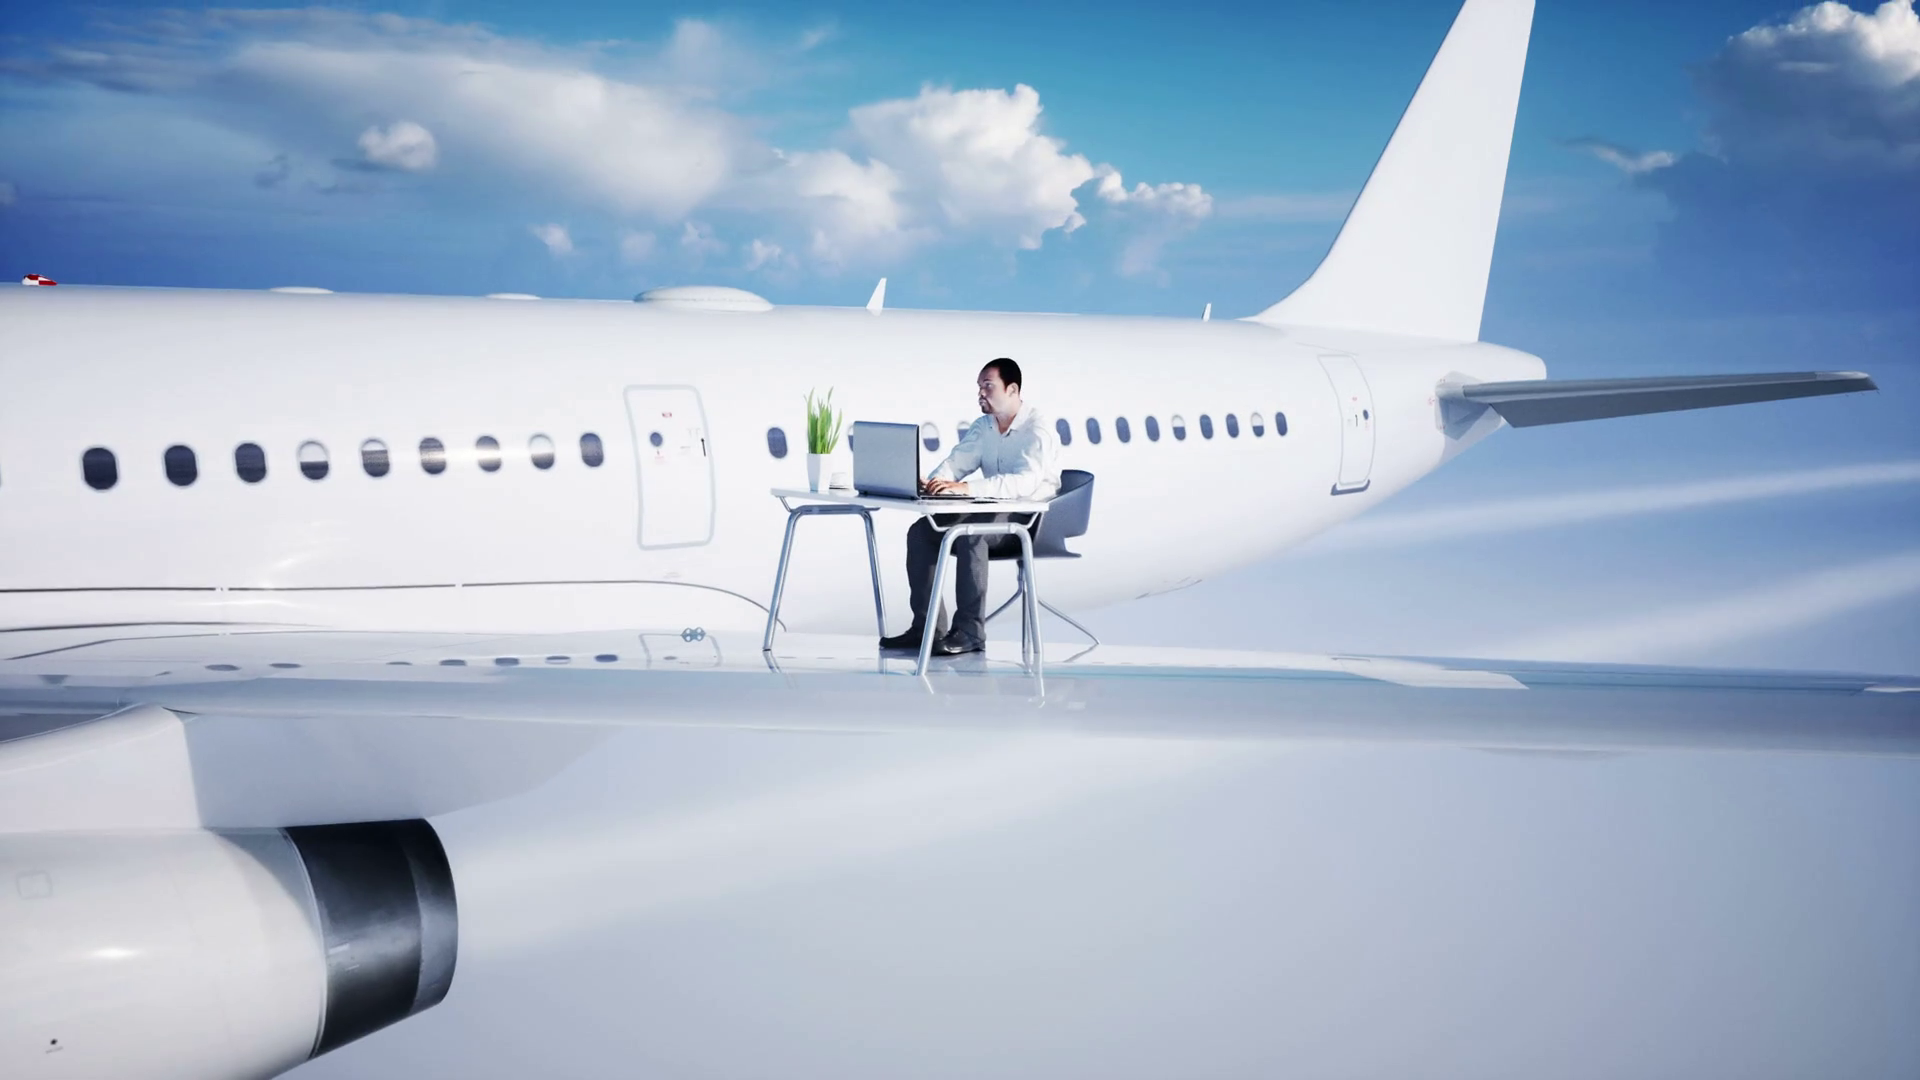 videoblocks-young-busy-businessman-working-on-the-flying-airplane-african-male-looking-into-the-screen-of-the-laptop-on-the-desk-creative-workspace-concept-realistic-4k-animation_bqz6j88ig_thumbnail-full01.png